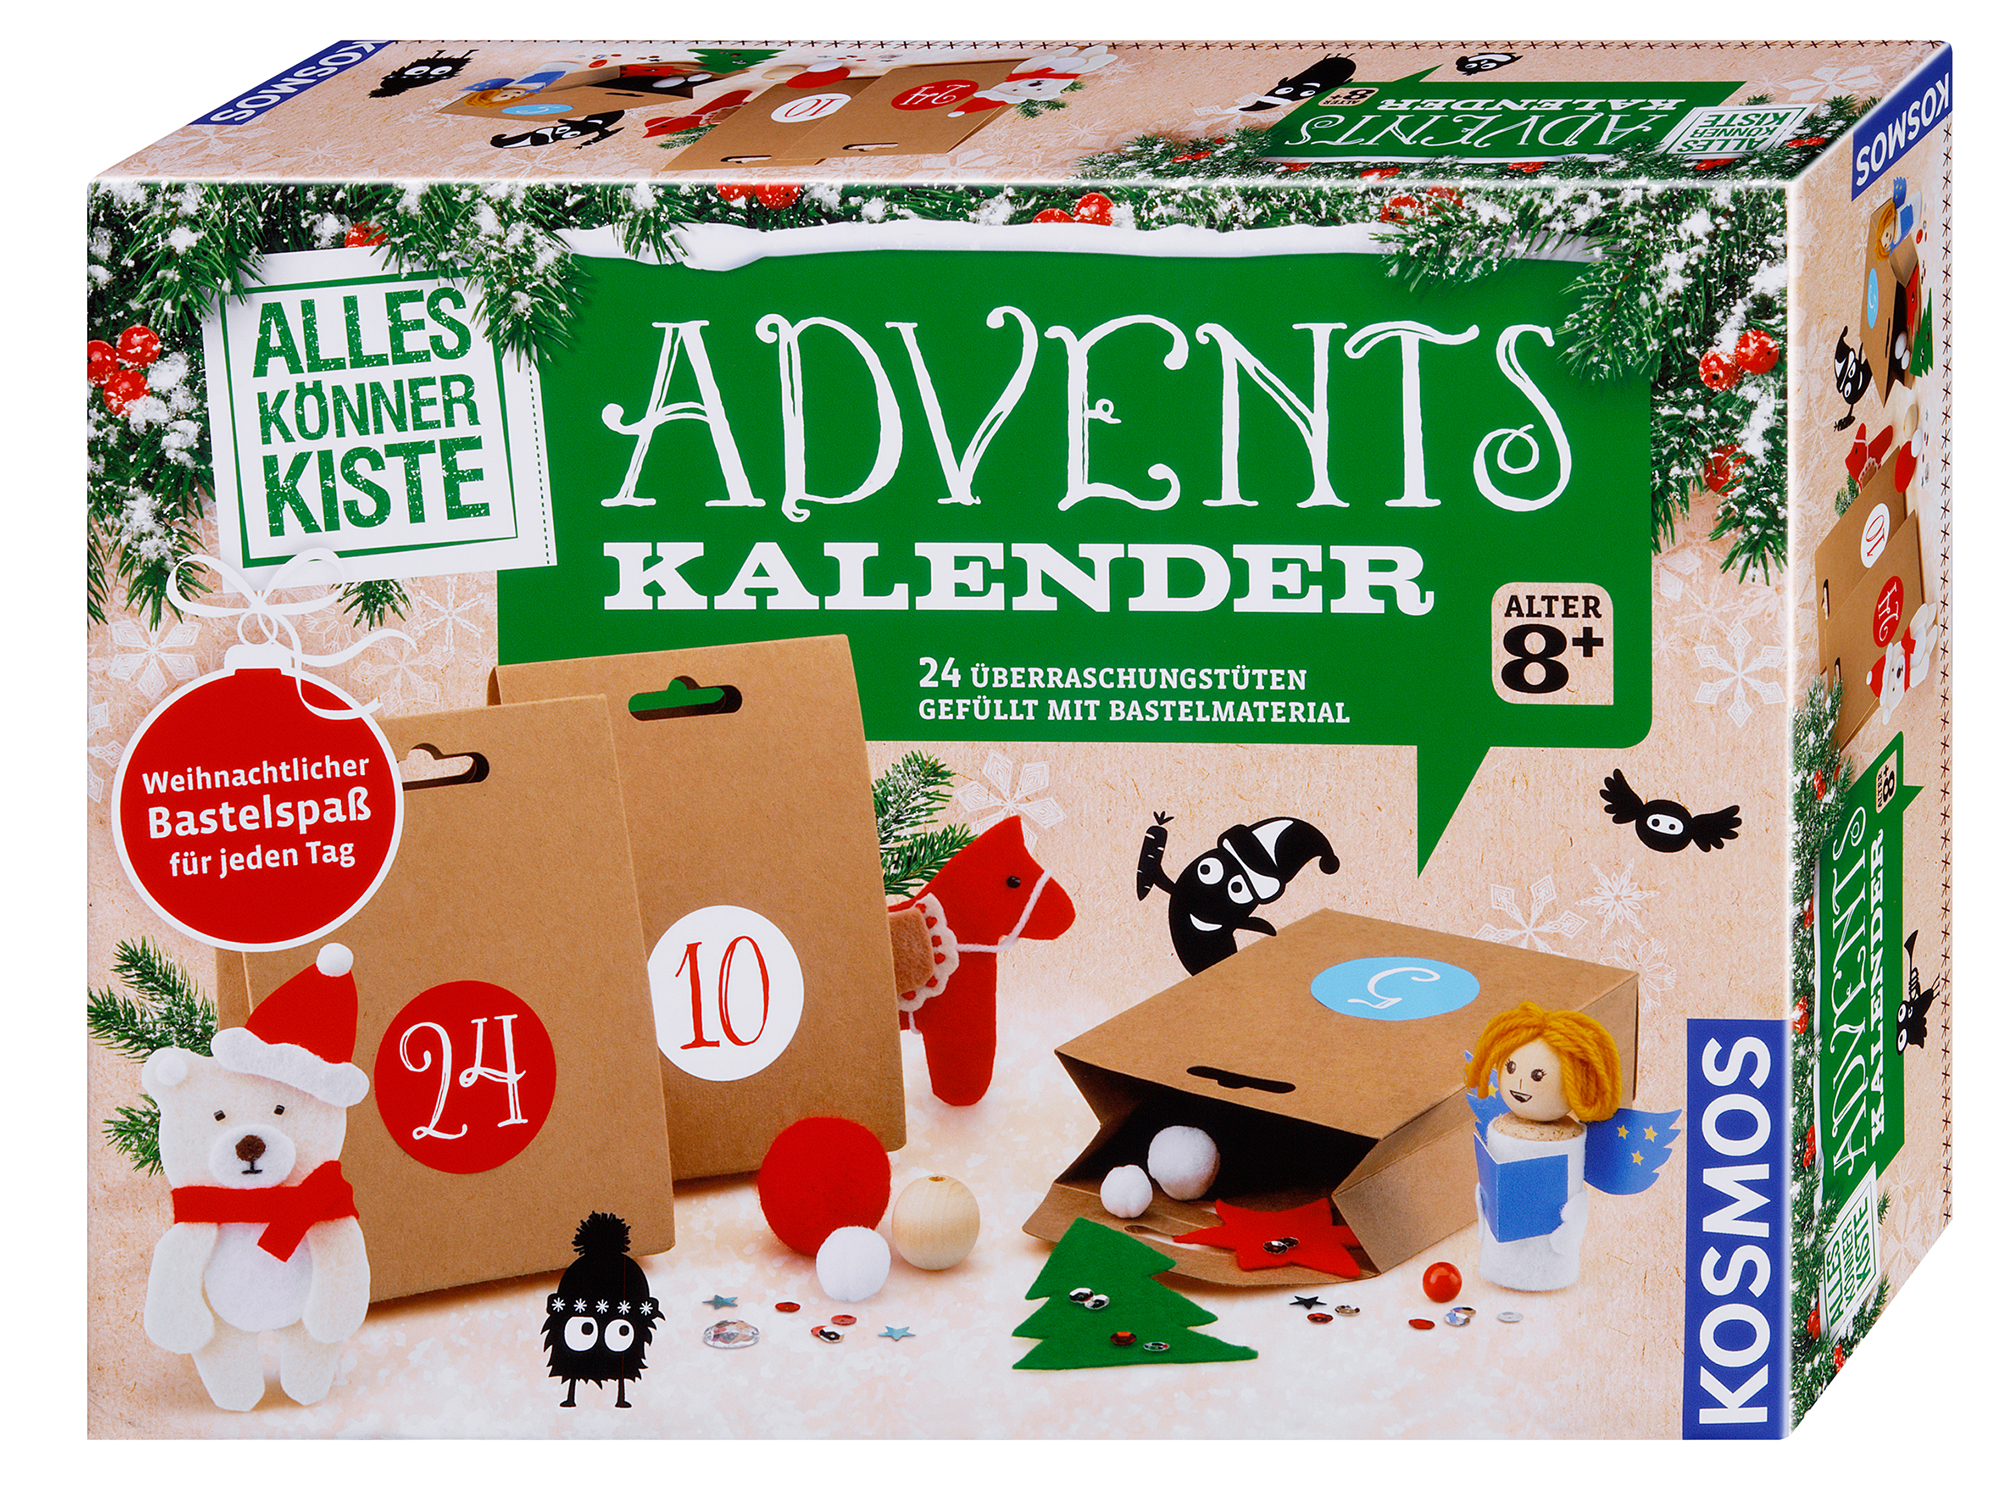 Bastel Adventskalender 2018